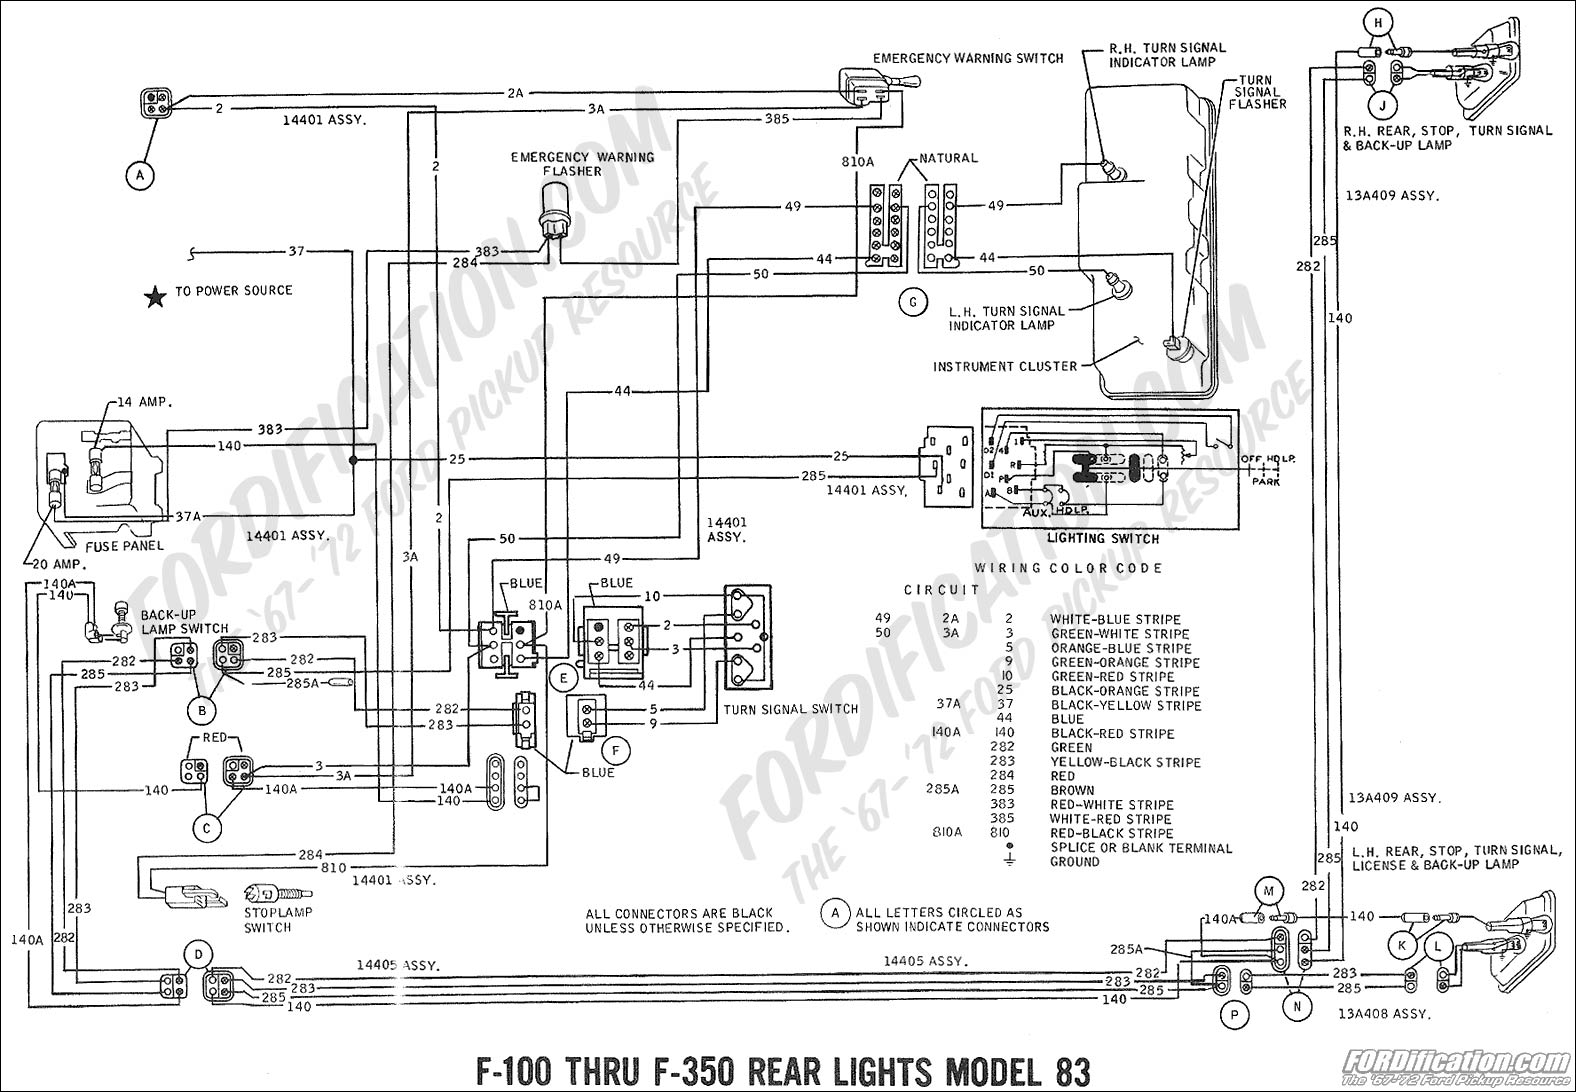 ford truck technical drawings and schematics section h ford f-250 wiring diagram 71 ford truck wiring diagram #2